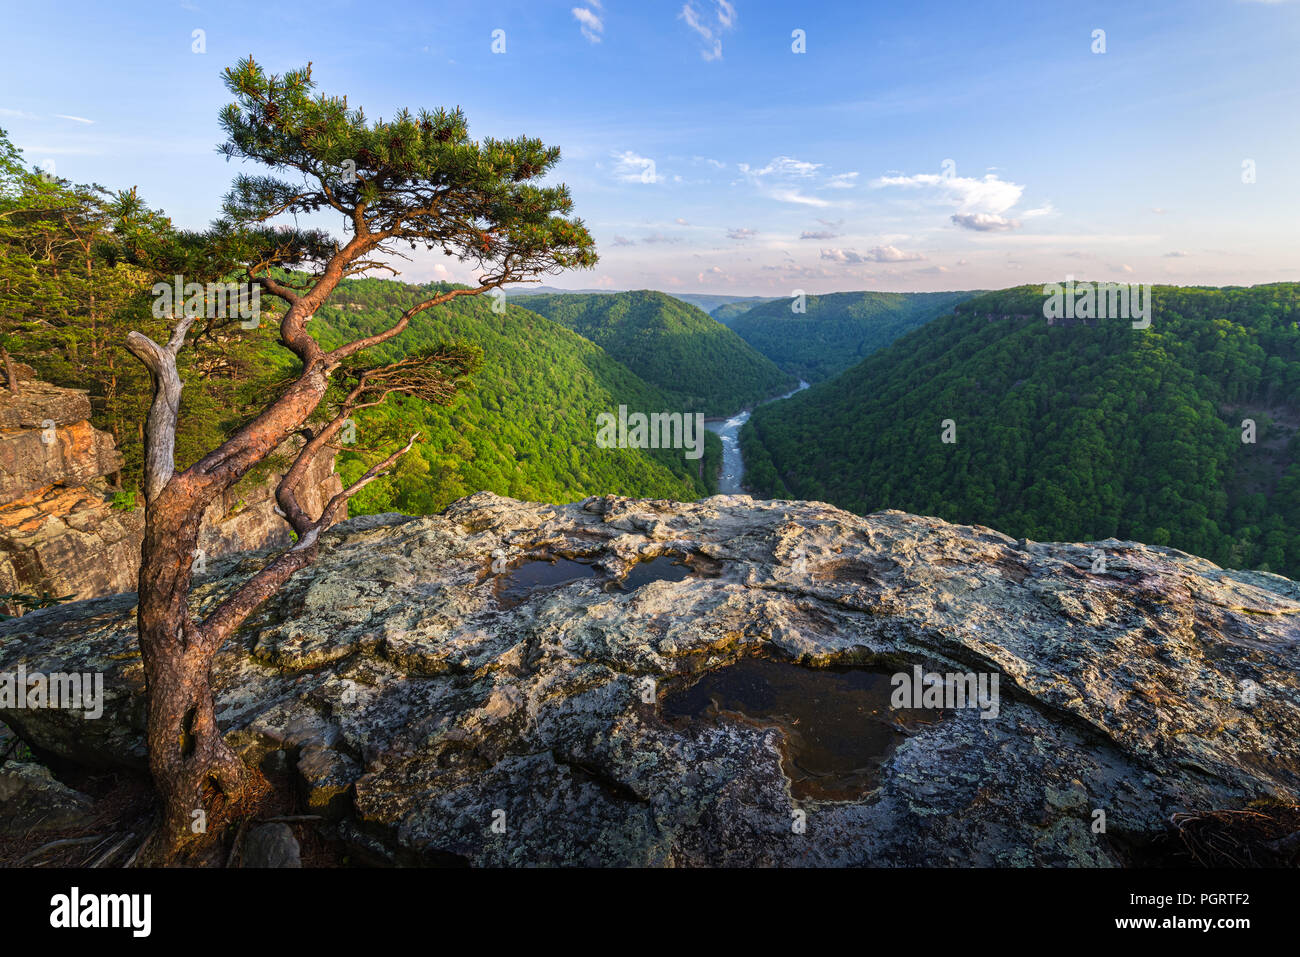 Along the cliff lines of Beauty Mountain, a stunted pine gestures toward the open landscape as if to introduce visitors to the New River Gorge of WV. - Stock Image